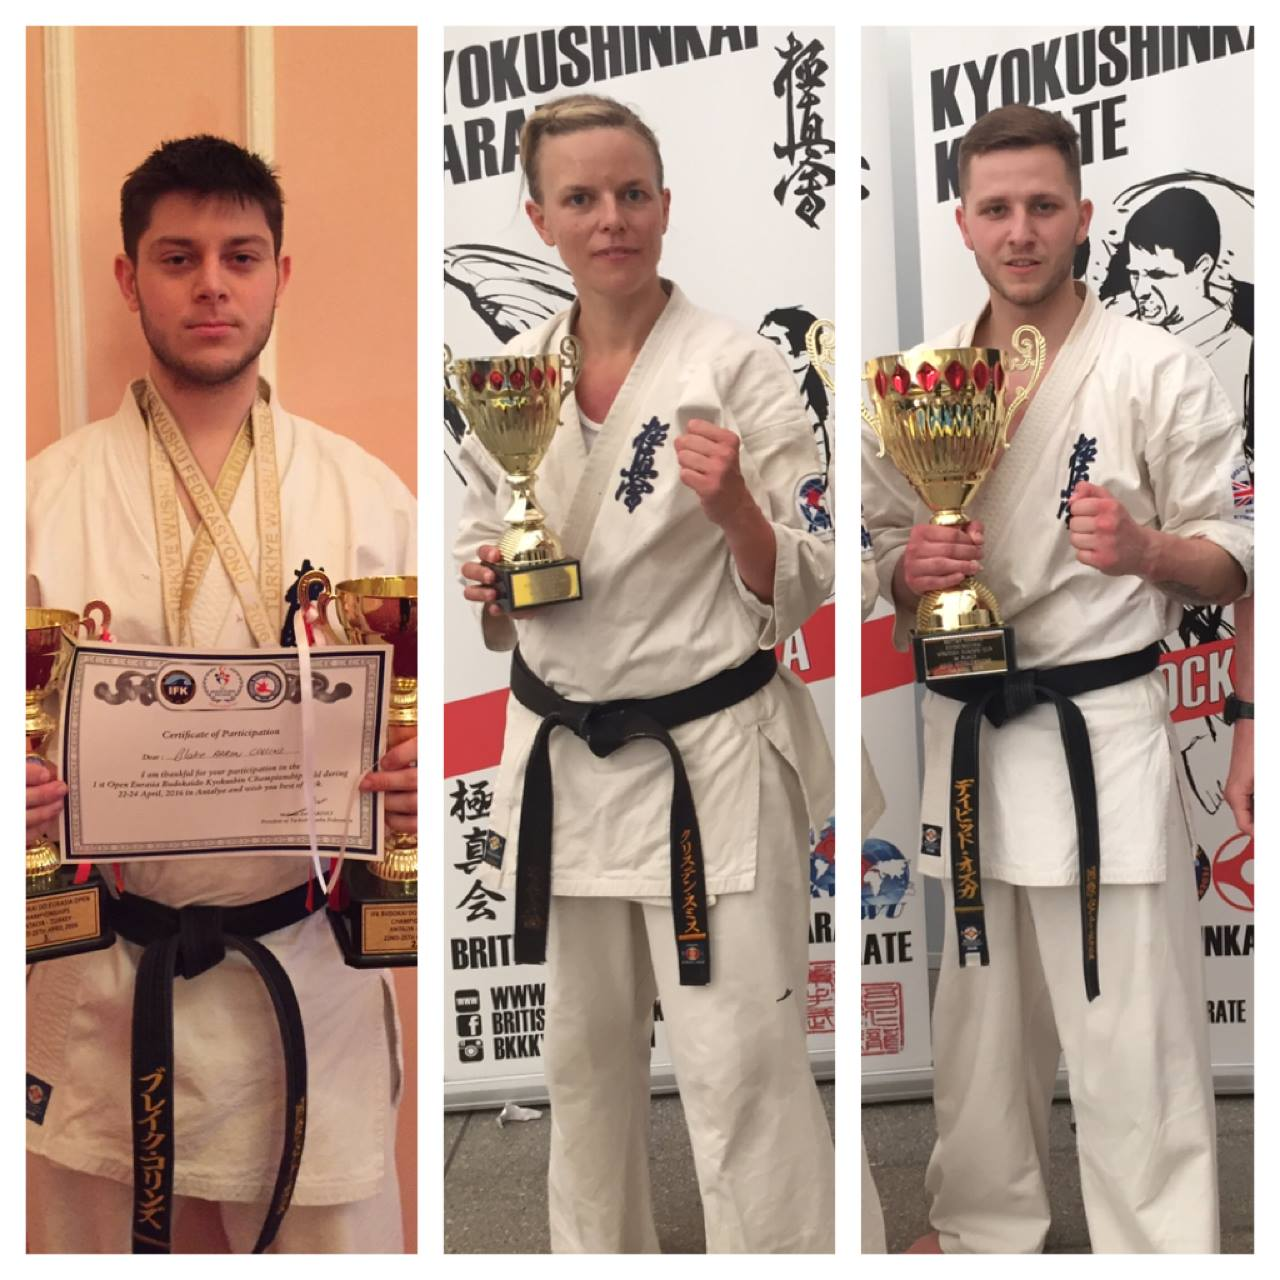 BKK Crawley have three fighters:  Former Open LW Champion Dawid Ozga Mens MW SENI West Europe Champion 2016 Scottish Open Champion 2016 BKK English Open Champion 2015  Kirsten Galatius Smith SENI West Europe 2016 3rd place KWU World Championships 2015 3rd place French Open Shinkyokushin 2015 3rd place  Blake Collins Mens MW Eurasia Cup 2016 3rd place Scottish Open 2016 3rd place